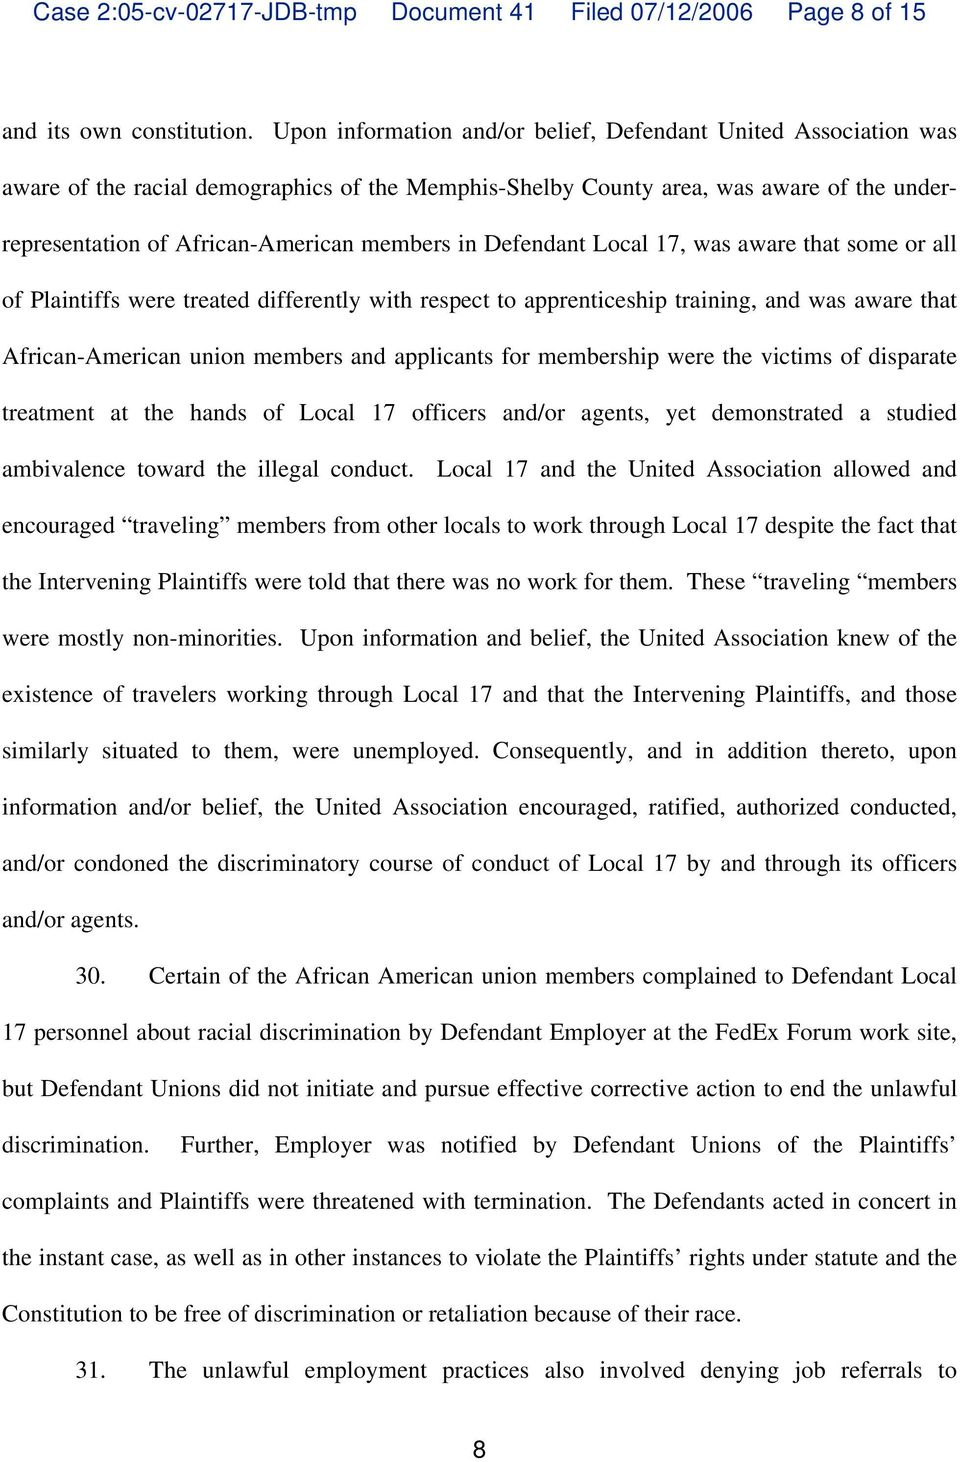 in Defendant Local 17, was aware that some or all of Plaintiffs were treated differently with respect to apprenticeship training, and was aware that African-American union members and applicants for